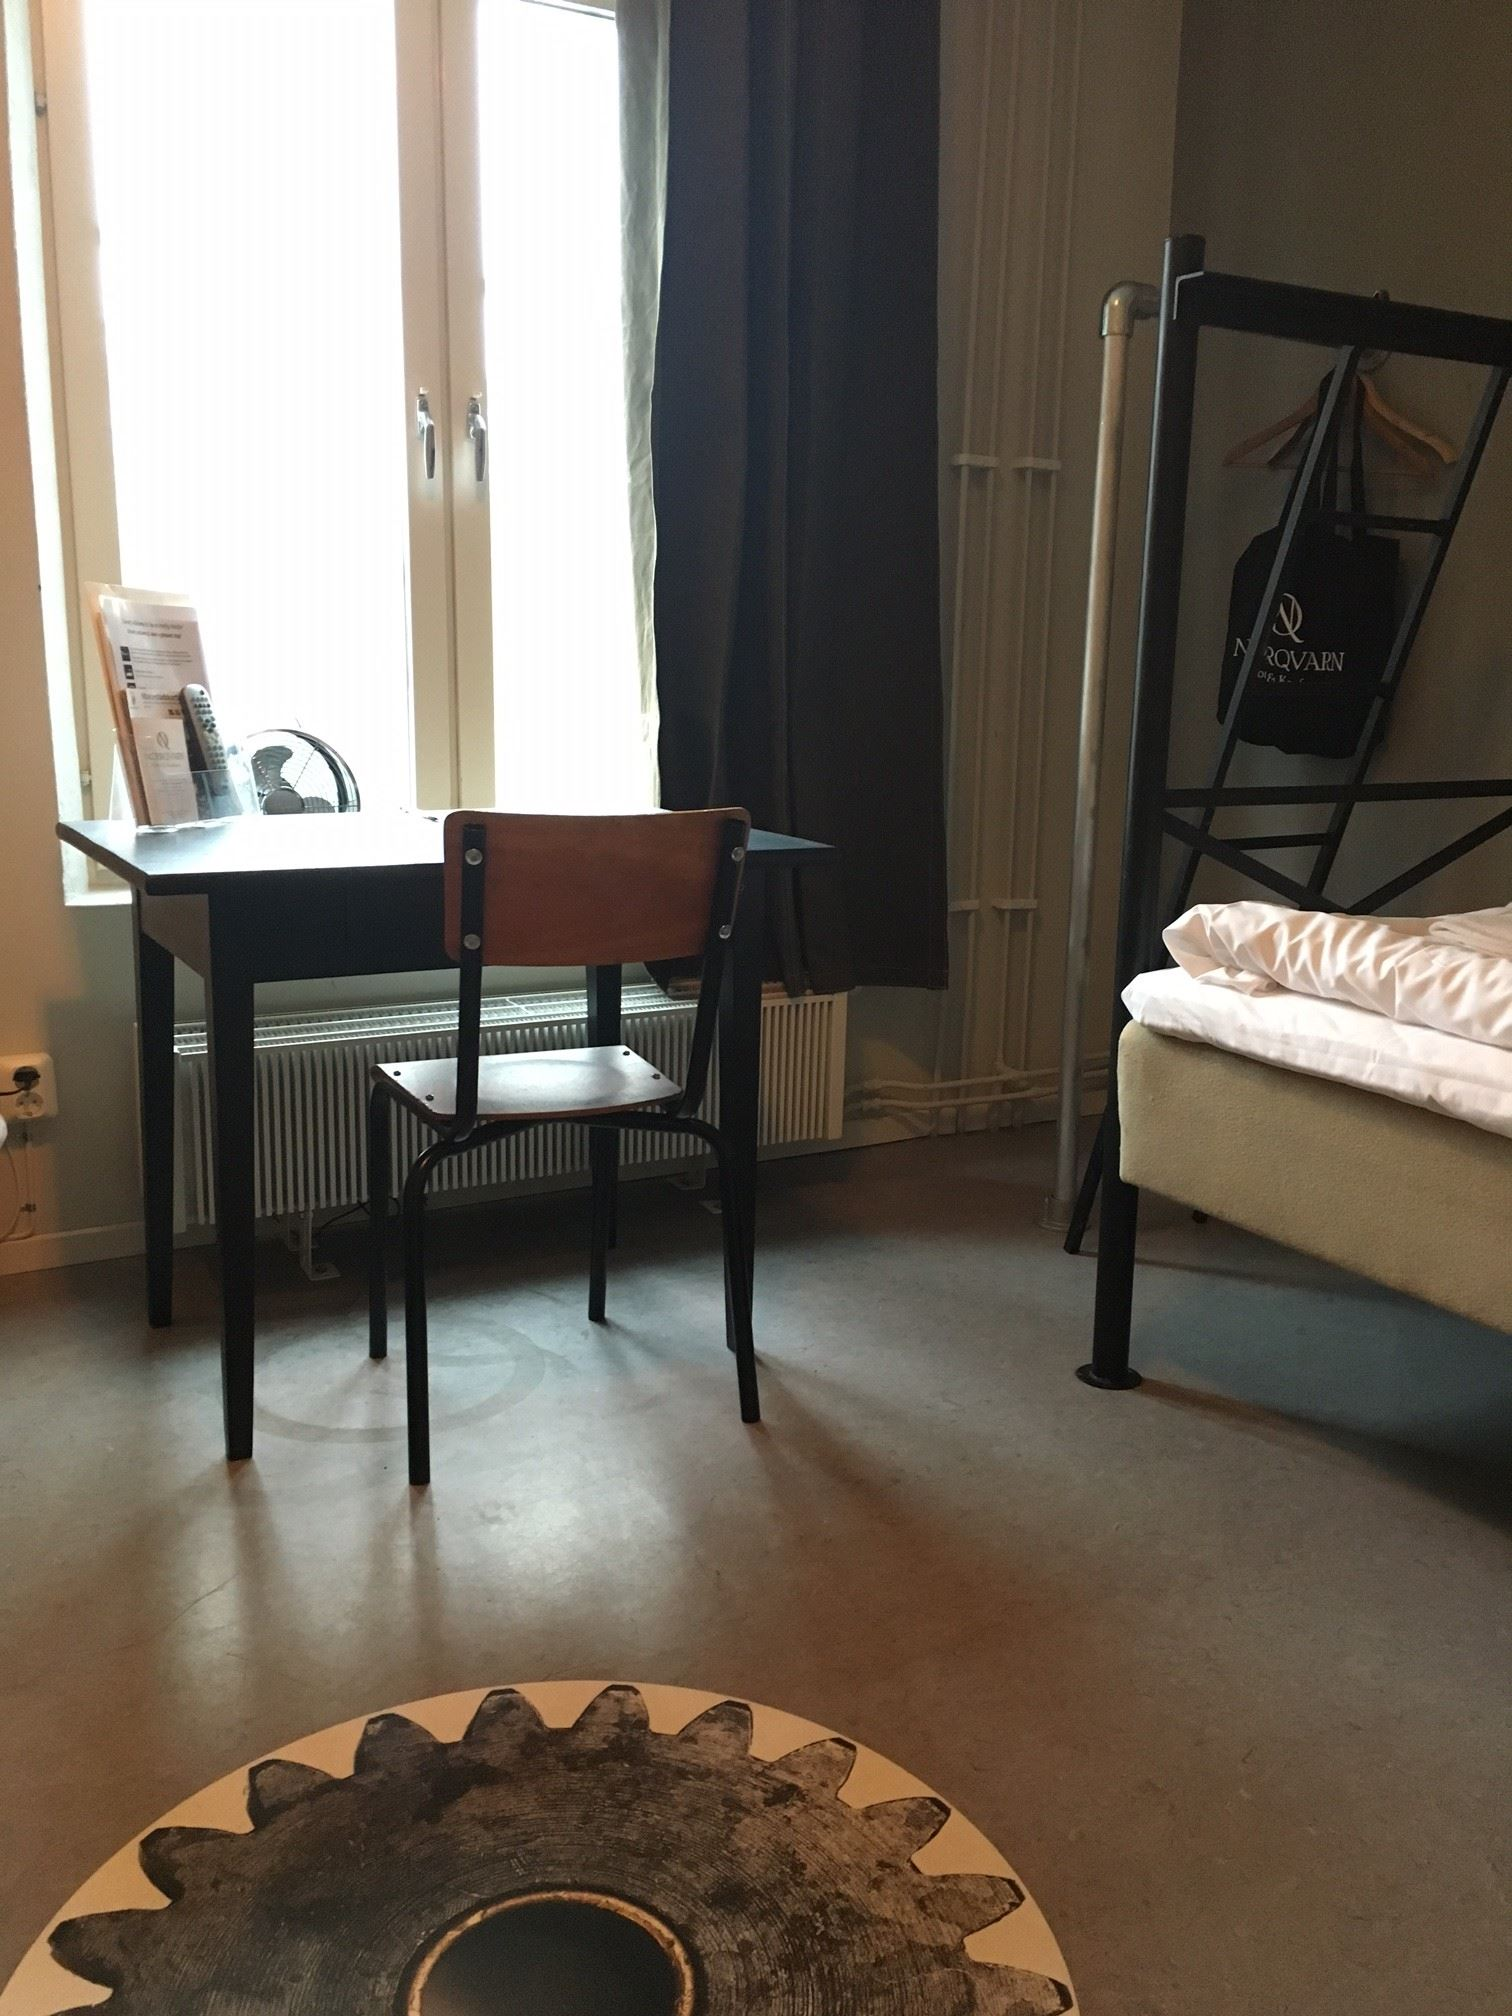 Norrqvarn Hotell, Budget